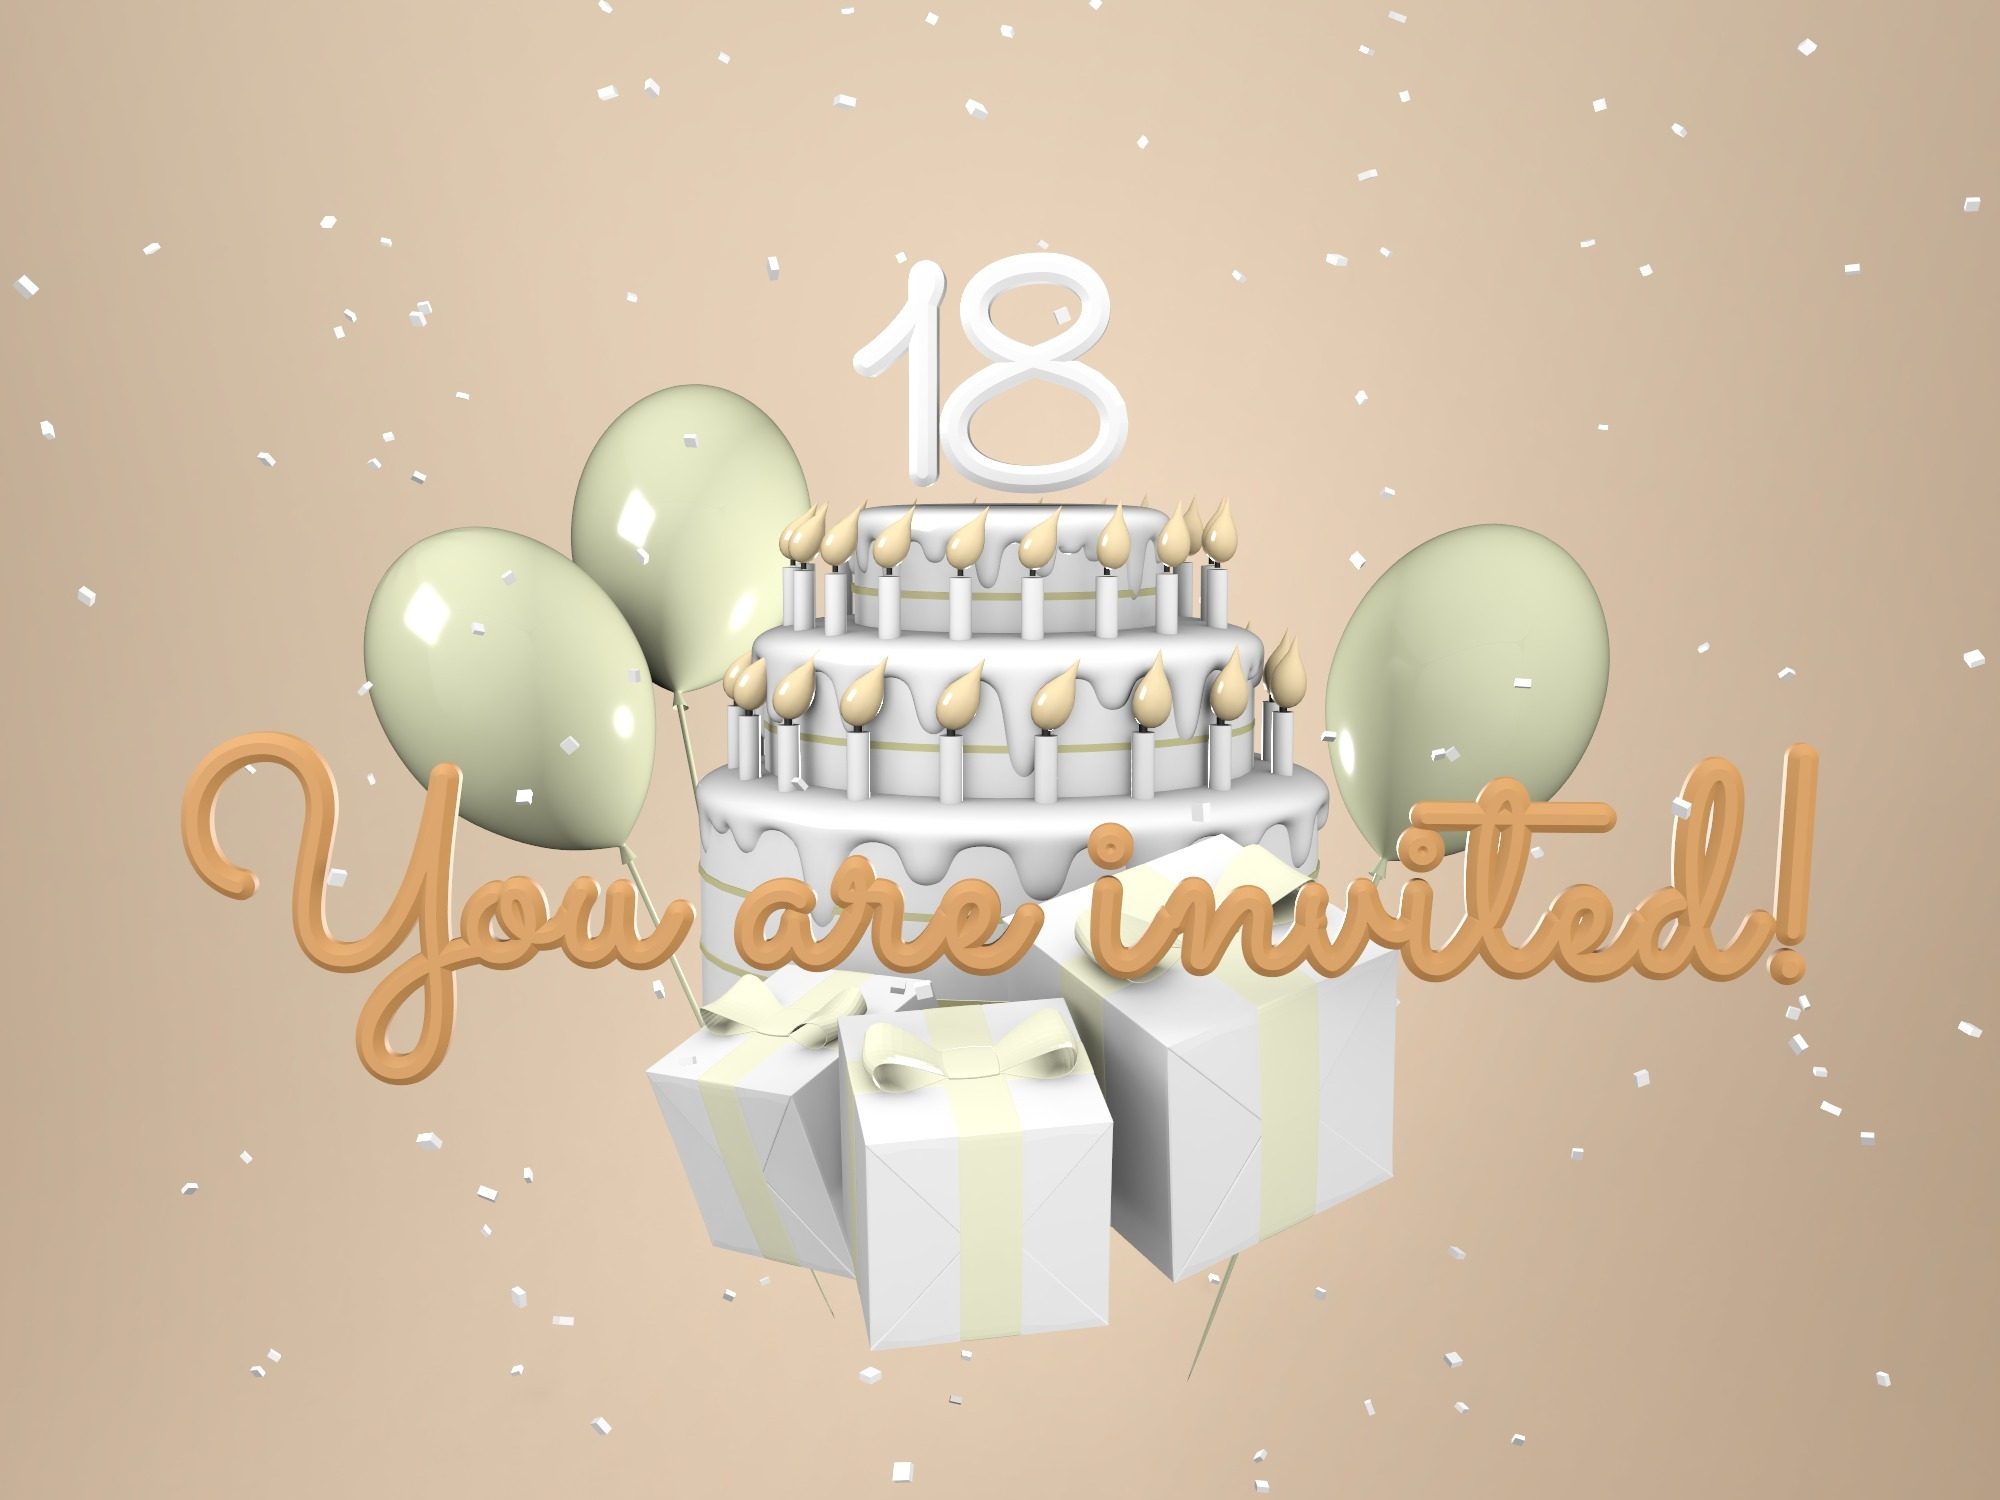 Birthday invitation - rewrite the text - 3D design by Vectary templates Jul 16, 2018